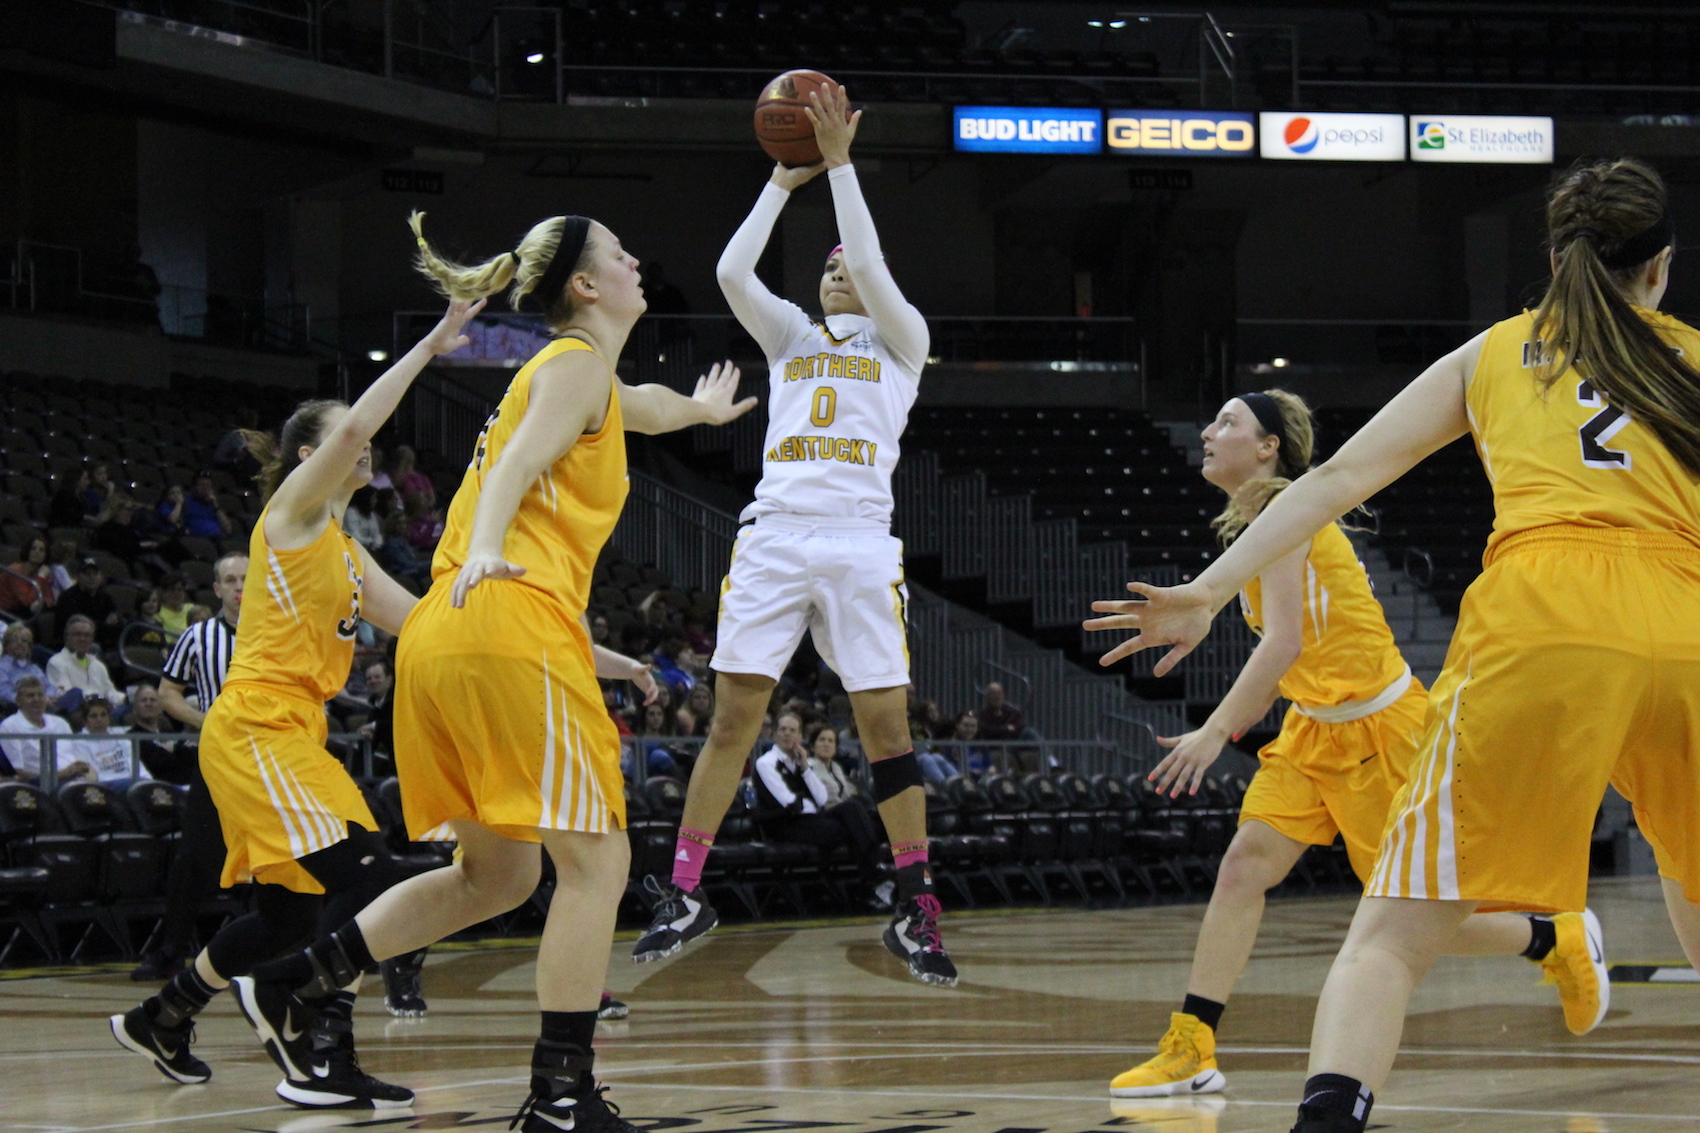 NKU's Shar'Rae Davis attempts a jump shot on Saturday at BB&T Arena